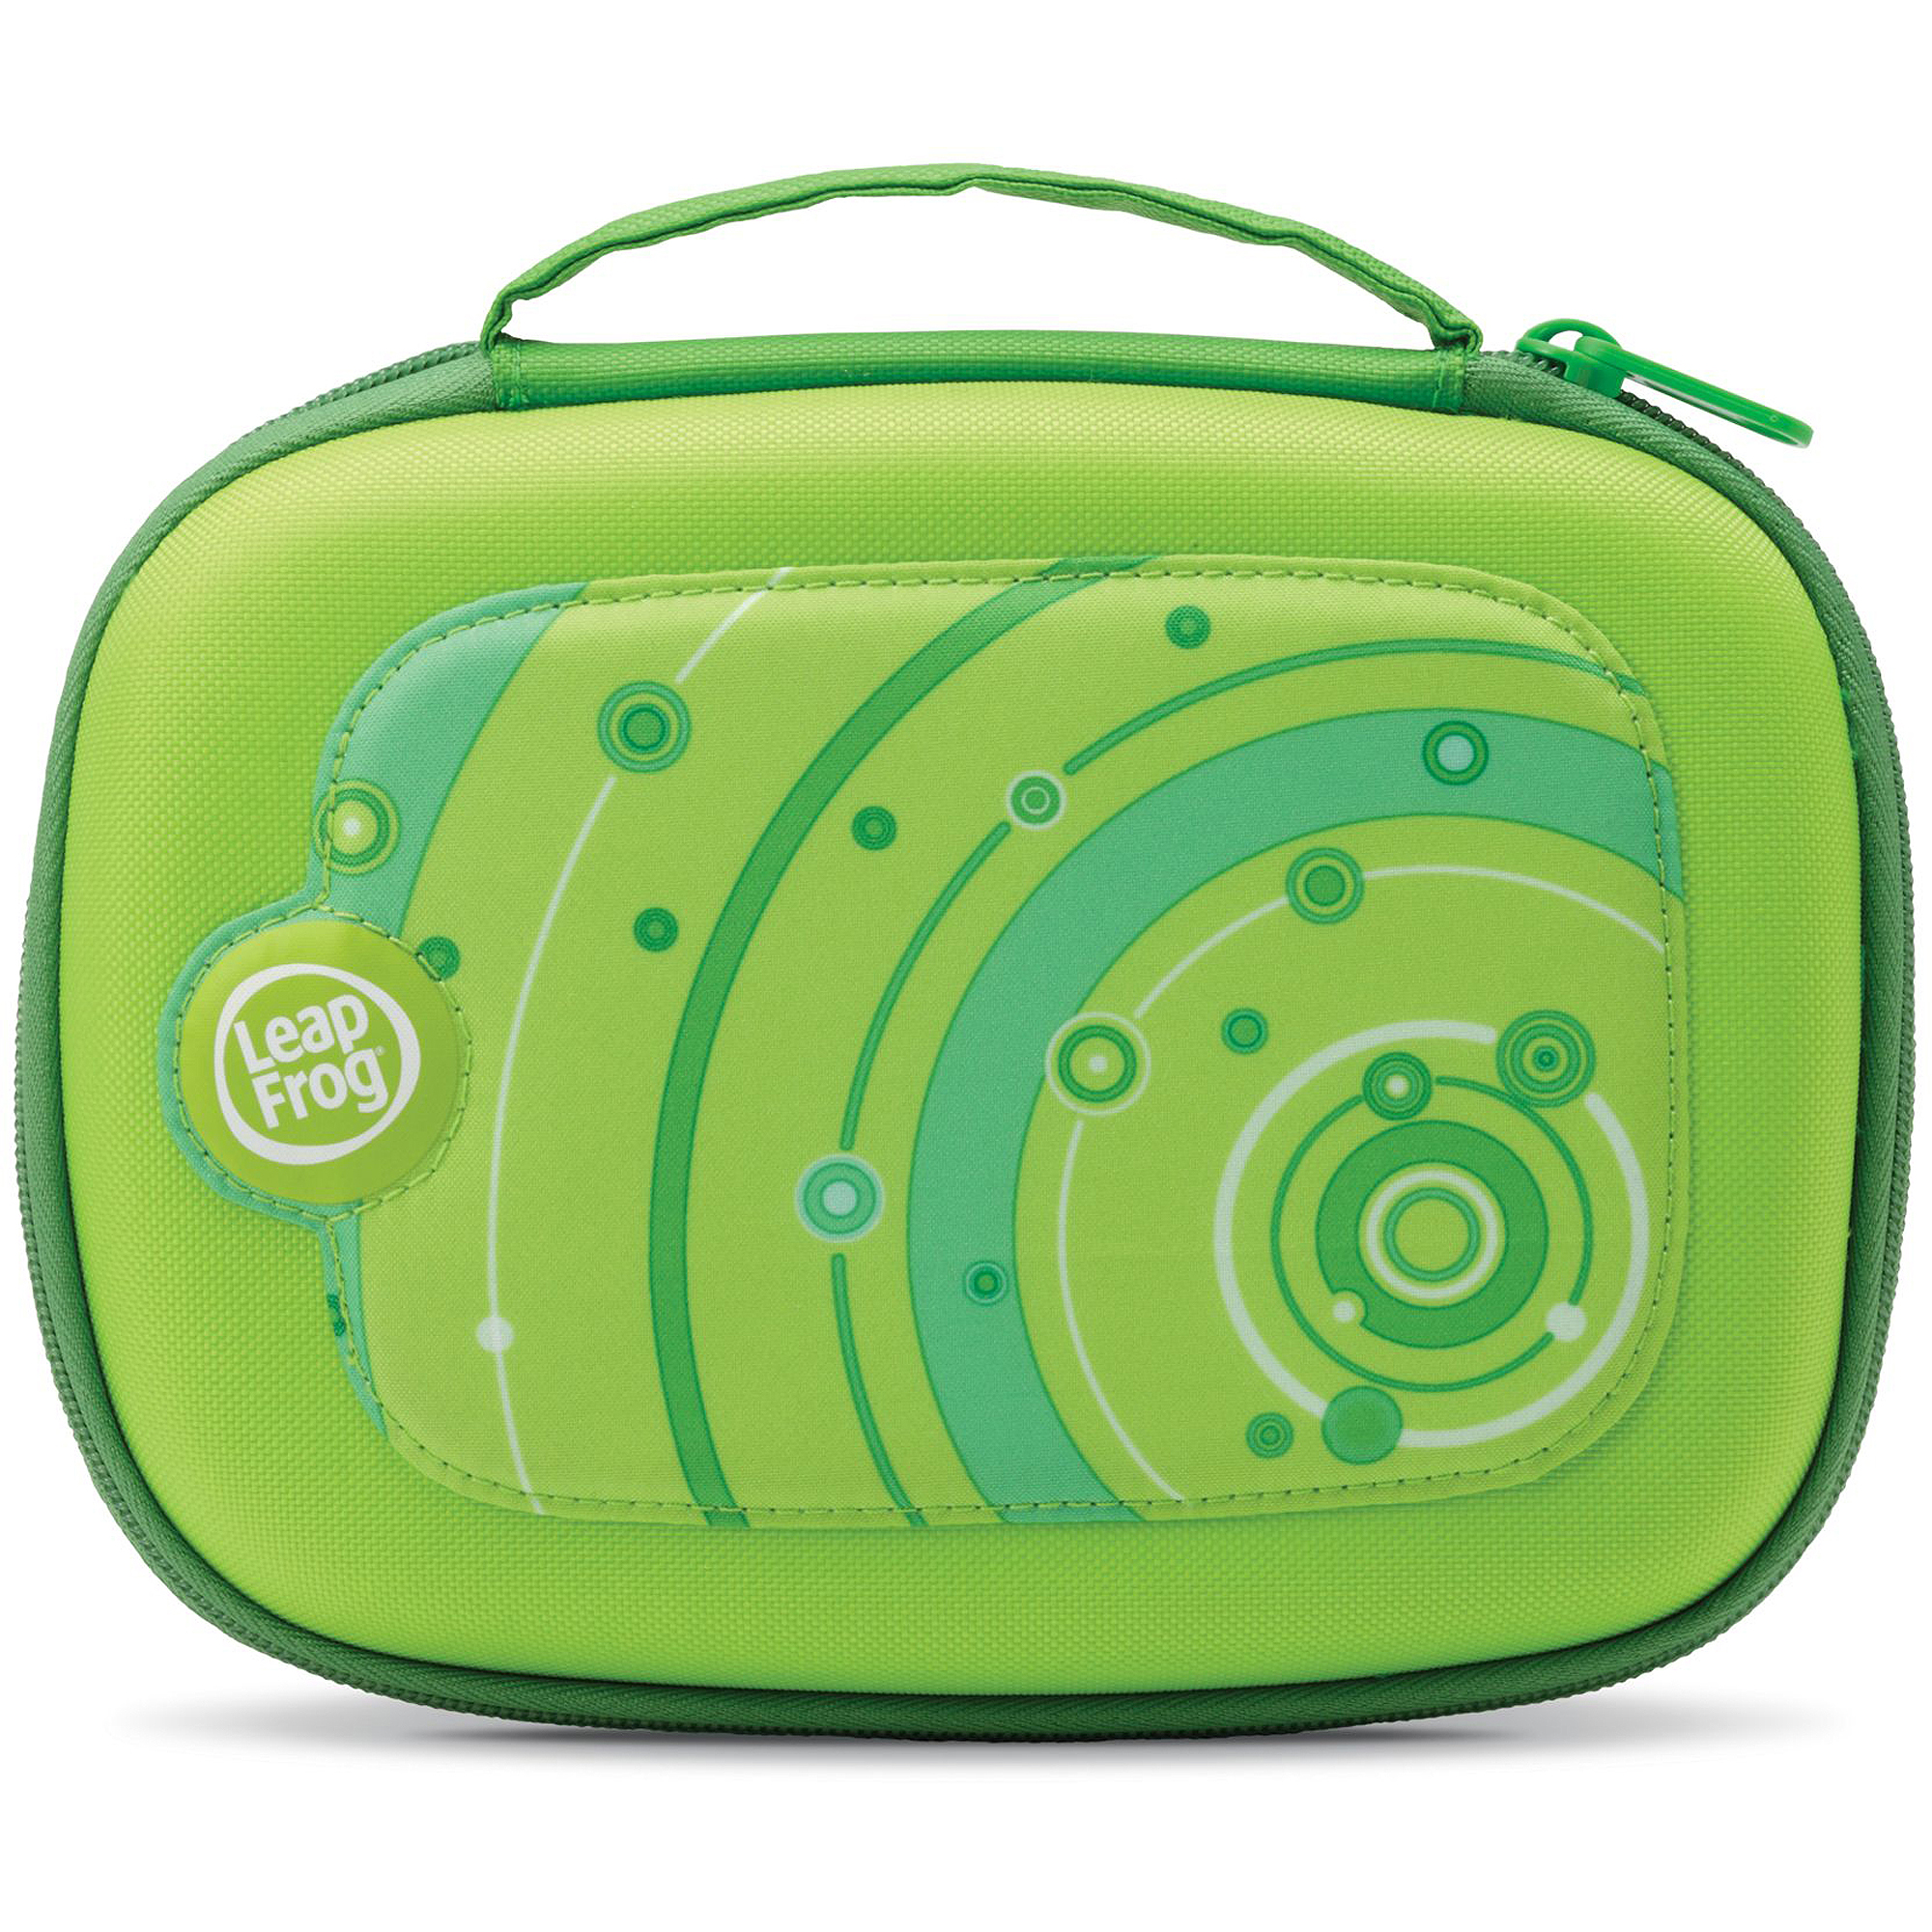 "LeapFrog 5"" Carrying Case, Green"